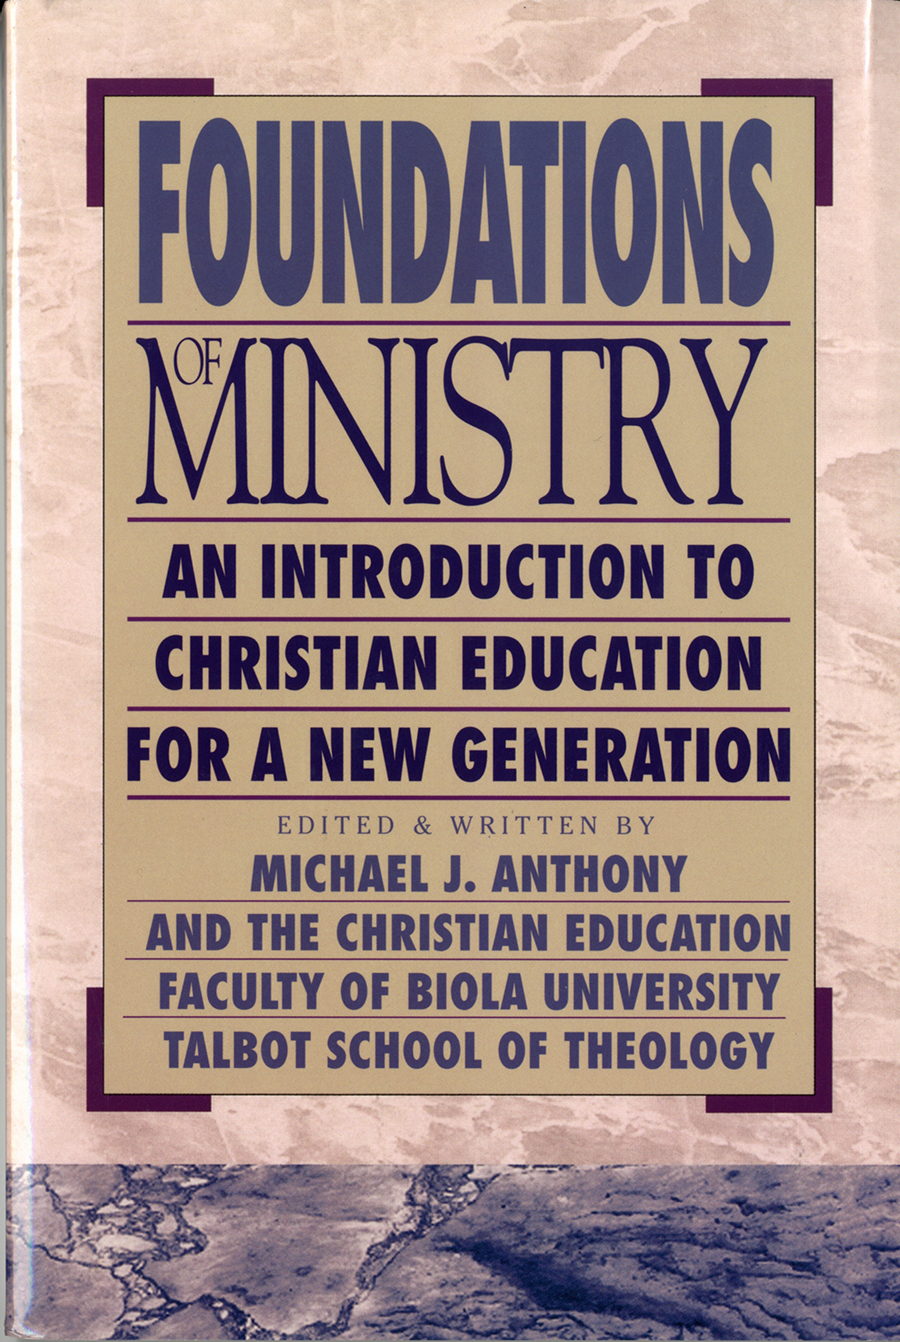 Foundations for Ministry: An Introduction to Christian